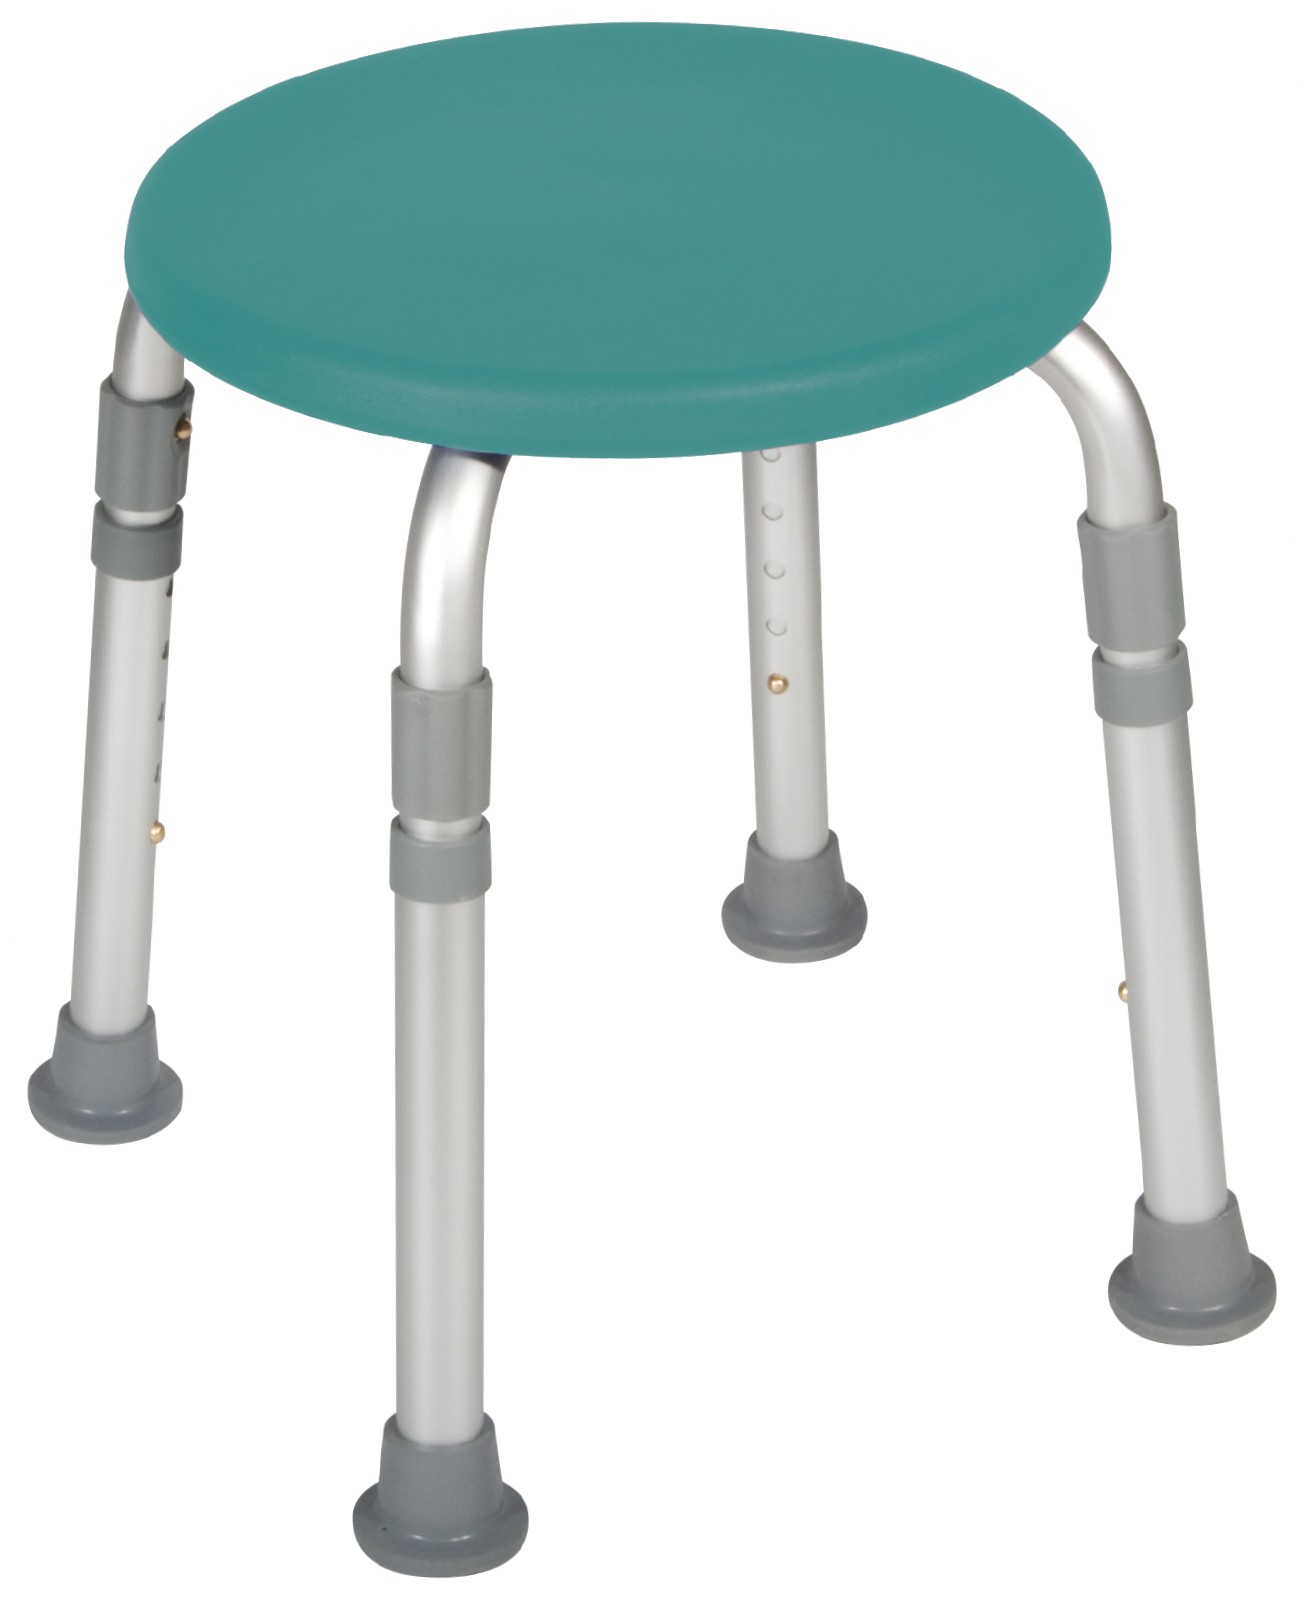 adjustable_height_bath_stool1.jpg